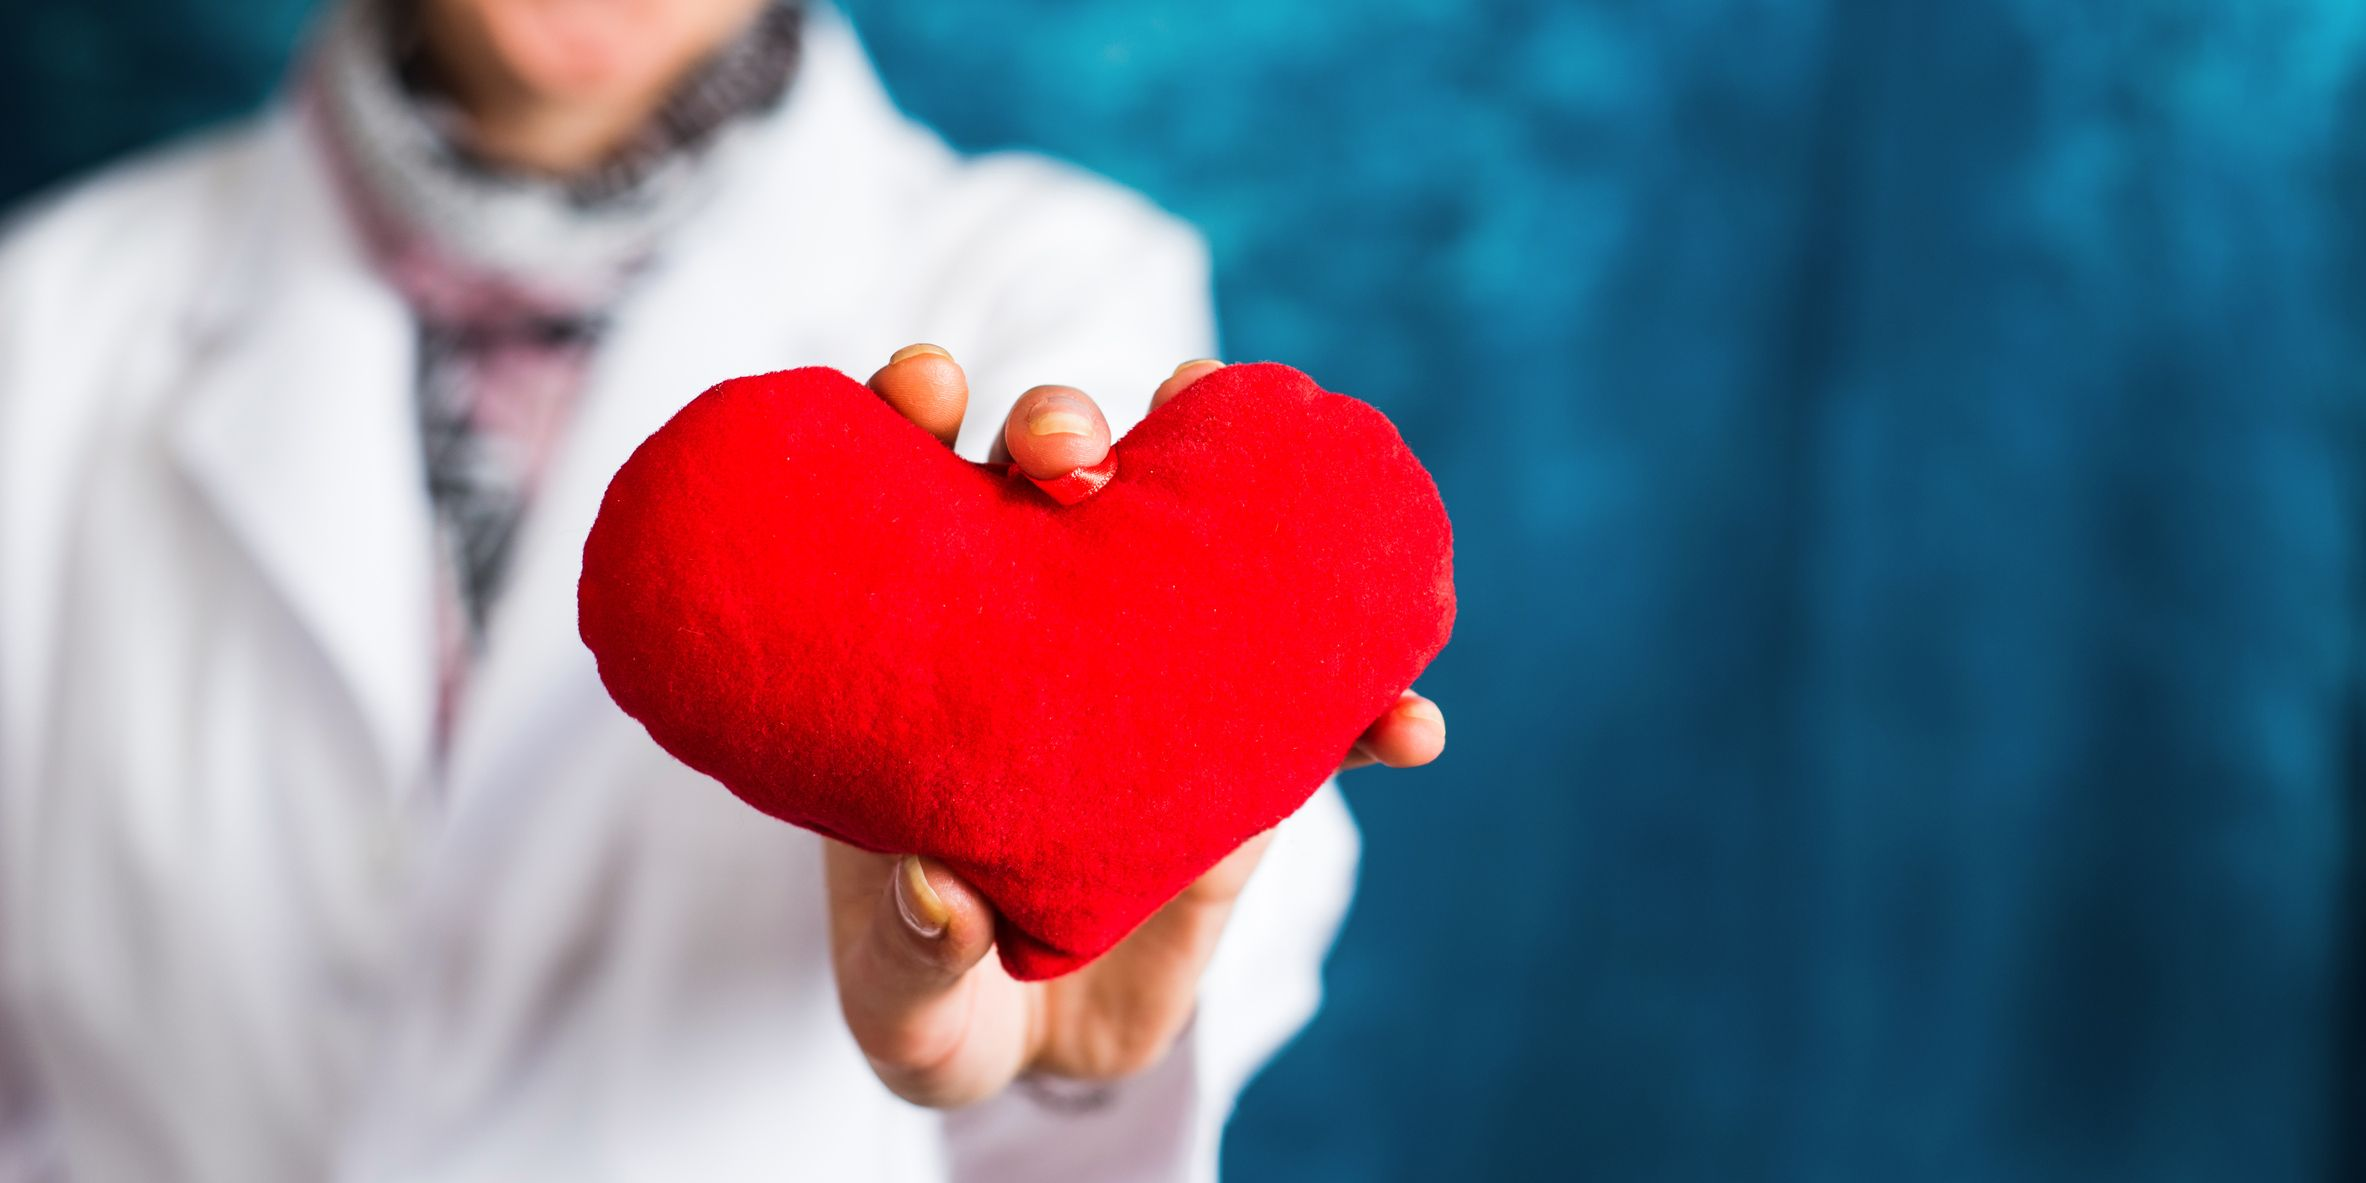 Female doctor holding a red heart closeup